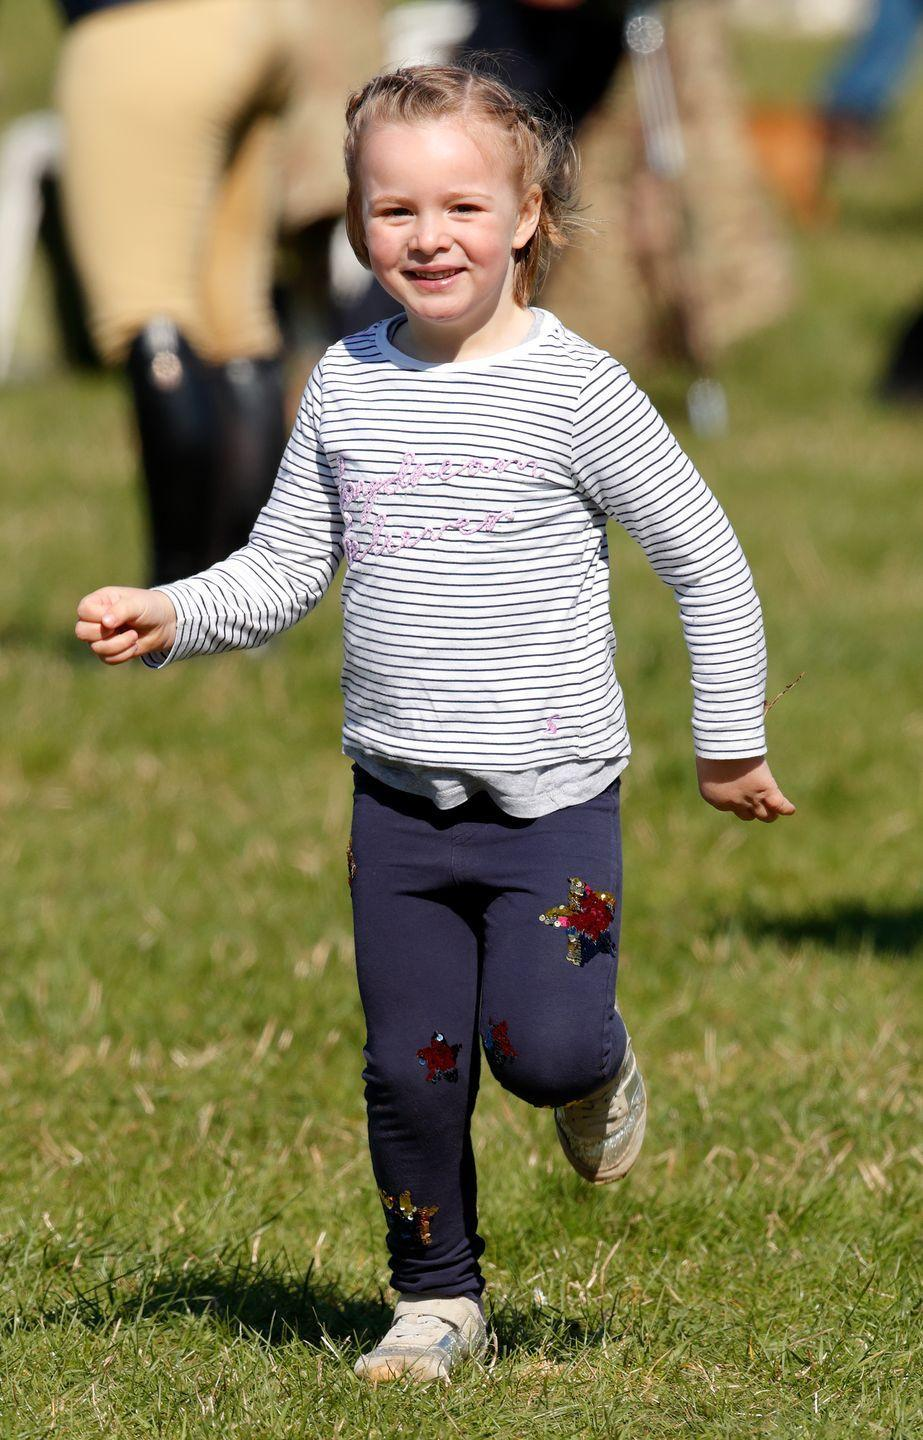 "<p><strong>Branch of the Family Tree: </strong>Daughter of Zara Tindall; great-granddaughter of Queen Elizabeth II</p><p><strong>More: </strong><a href=""https://www.townandcountrymag.com/society/tradition/a15158722/mia-tindall-facts/"" rel=""nofollow noopener"" target=""_blank"" data-ylk=""slk:Meet the Queen's Great-Granddaughter Mia Tindall"" class=""link rapid-noclick-resp"">Meet the Queen's Great-Granddaughter Mia Tindall </a></p>"